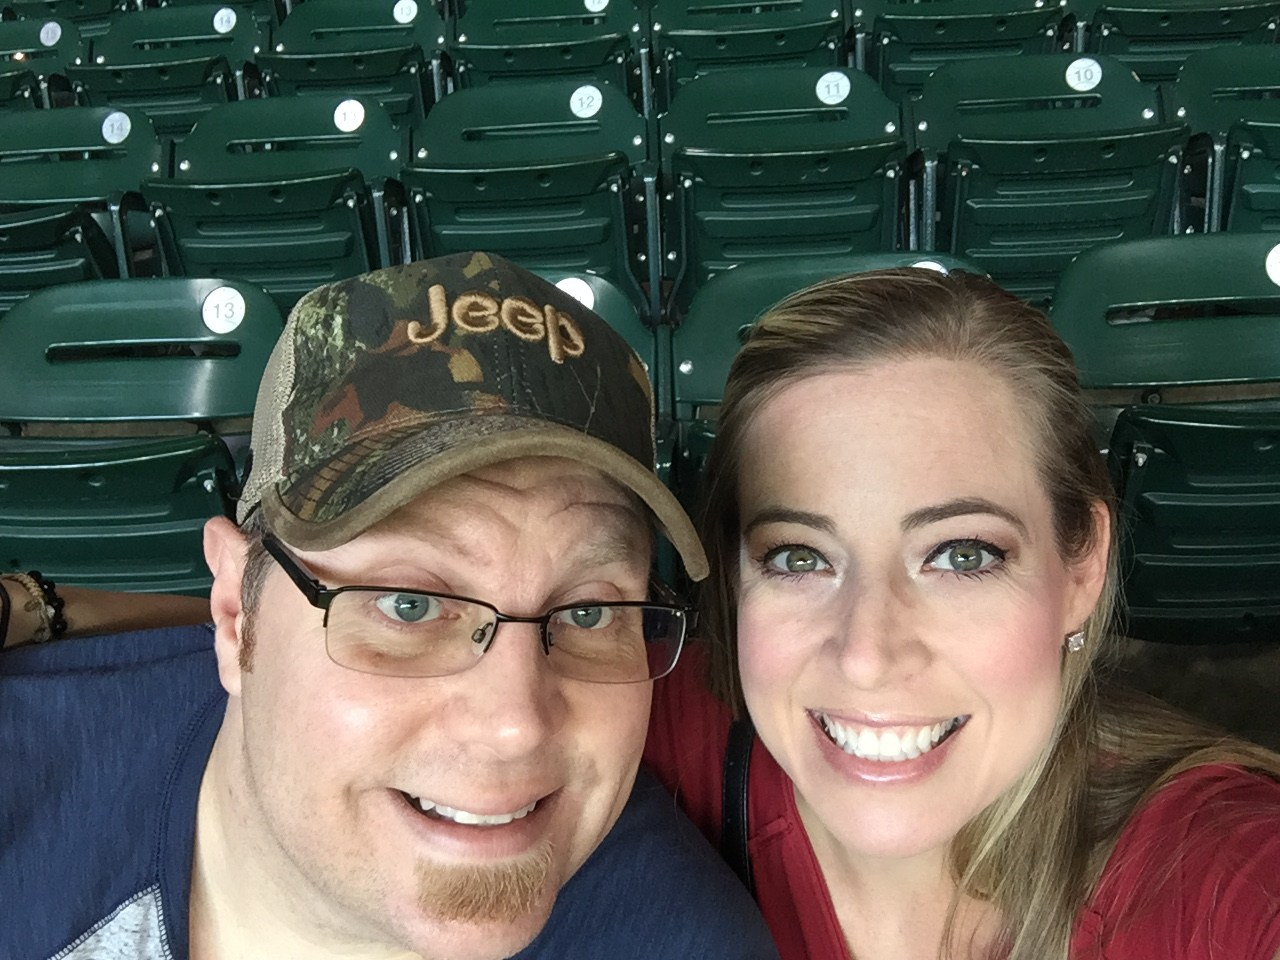 Mrs. Baker and husband at the Houston Astros game